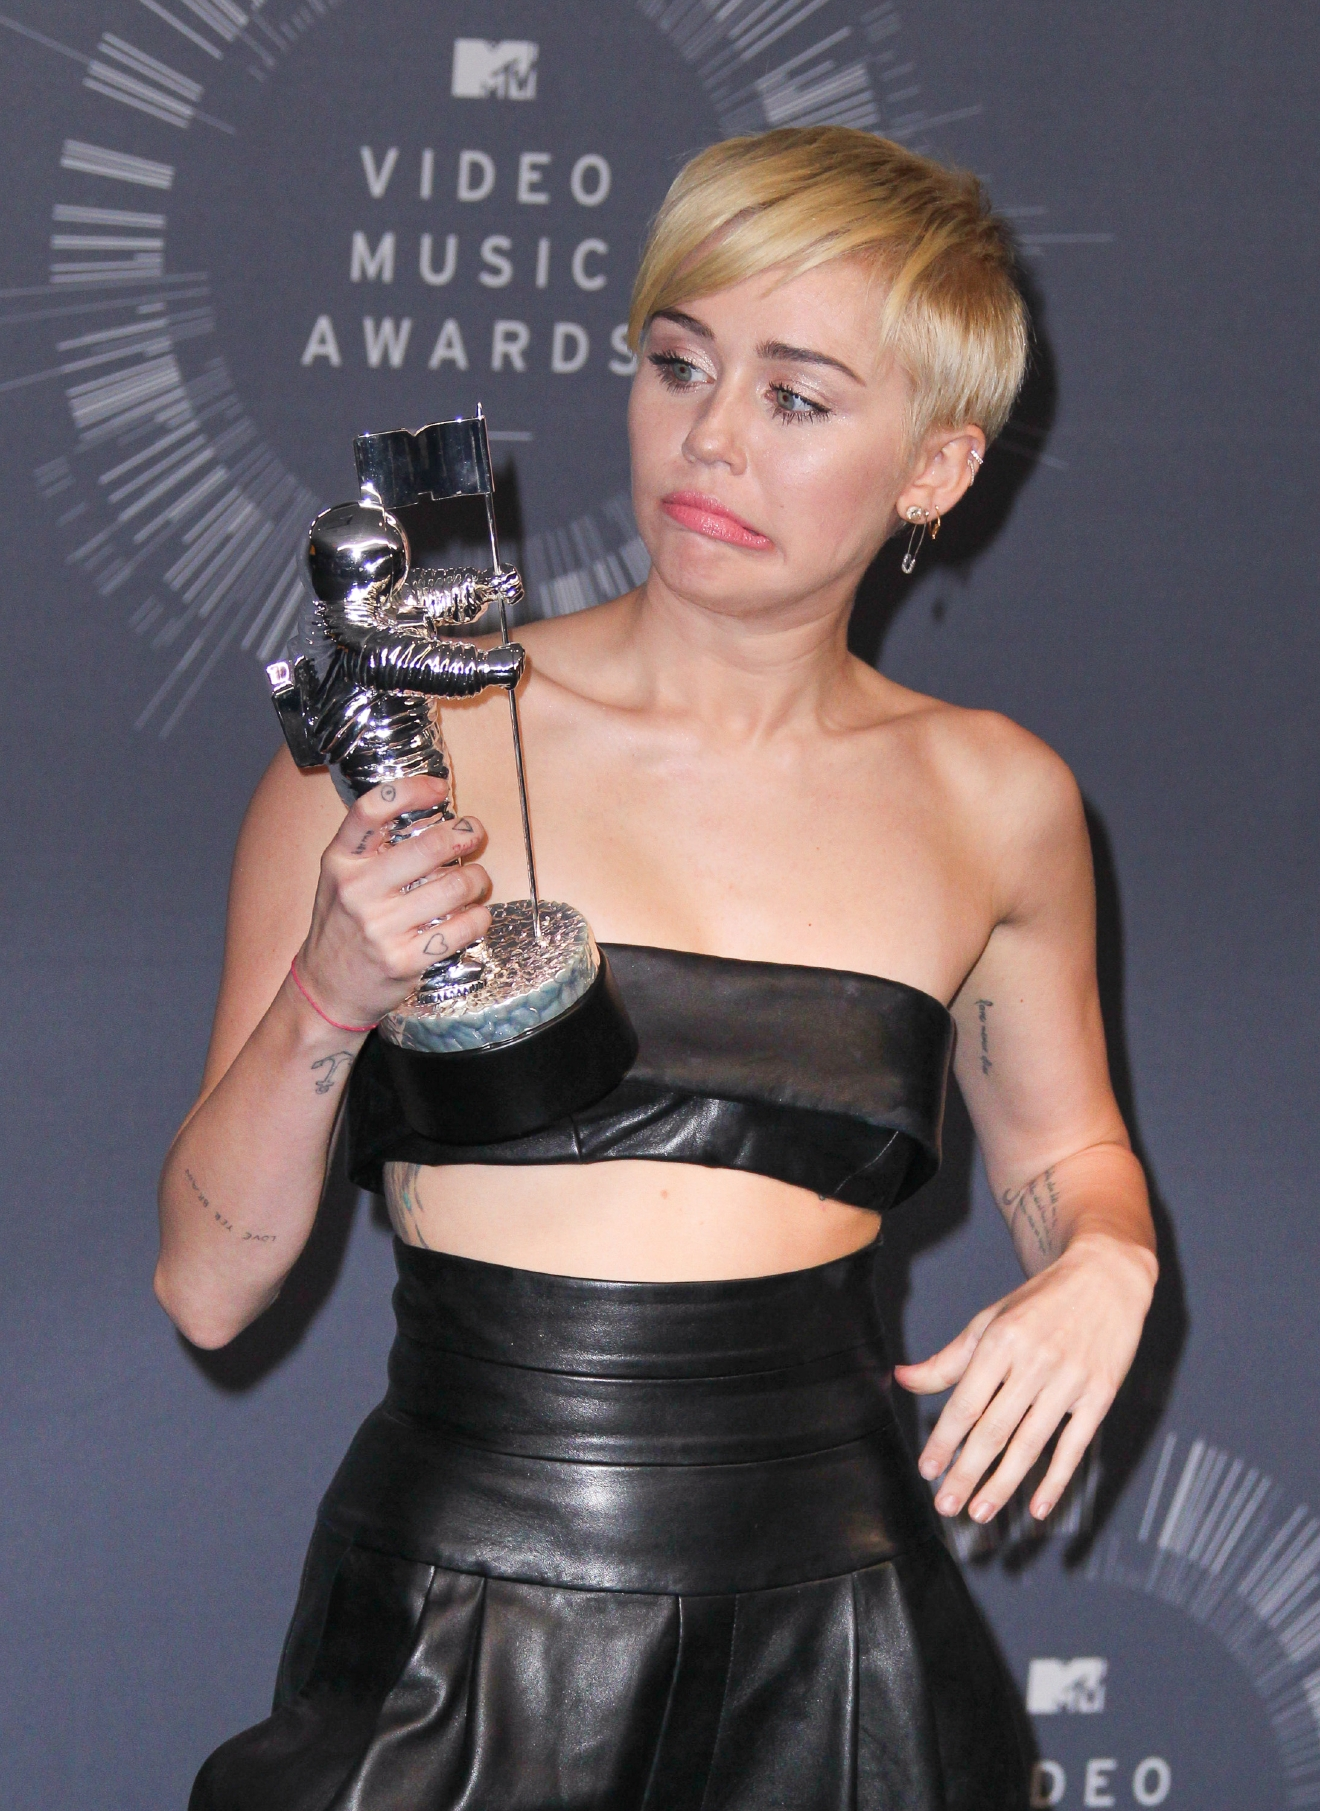 2014 MTV Video Music Awards (VMAs) held at The Forum - Press Room  Featuring: Miley Cyrus Where: Los Angeles, California, United States When: 24 Aug 2014 Credit: Bridow/WENN.com